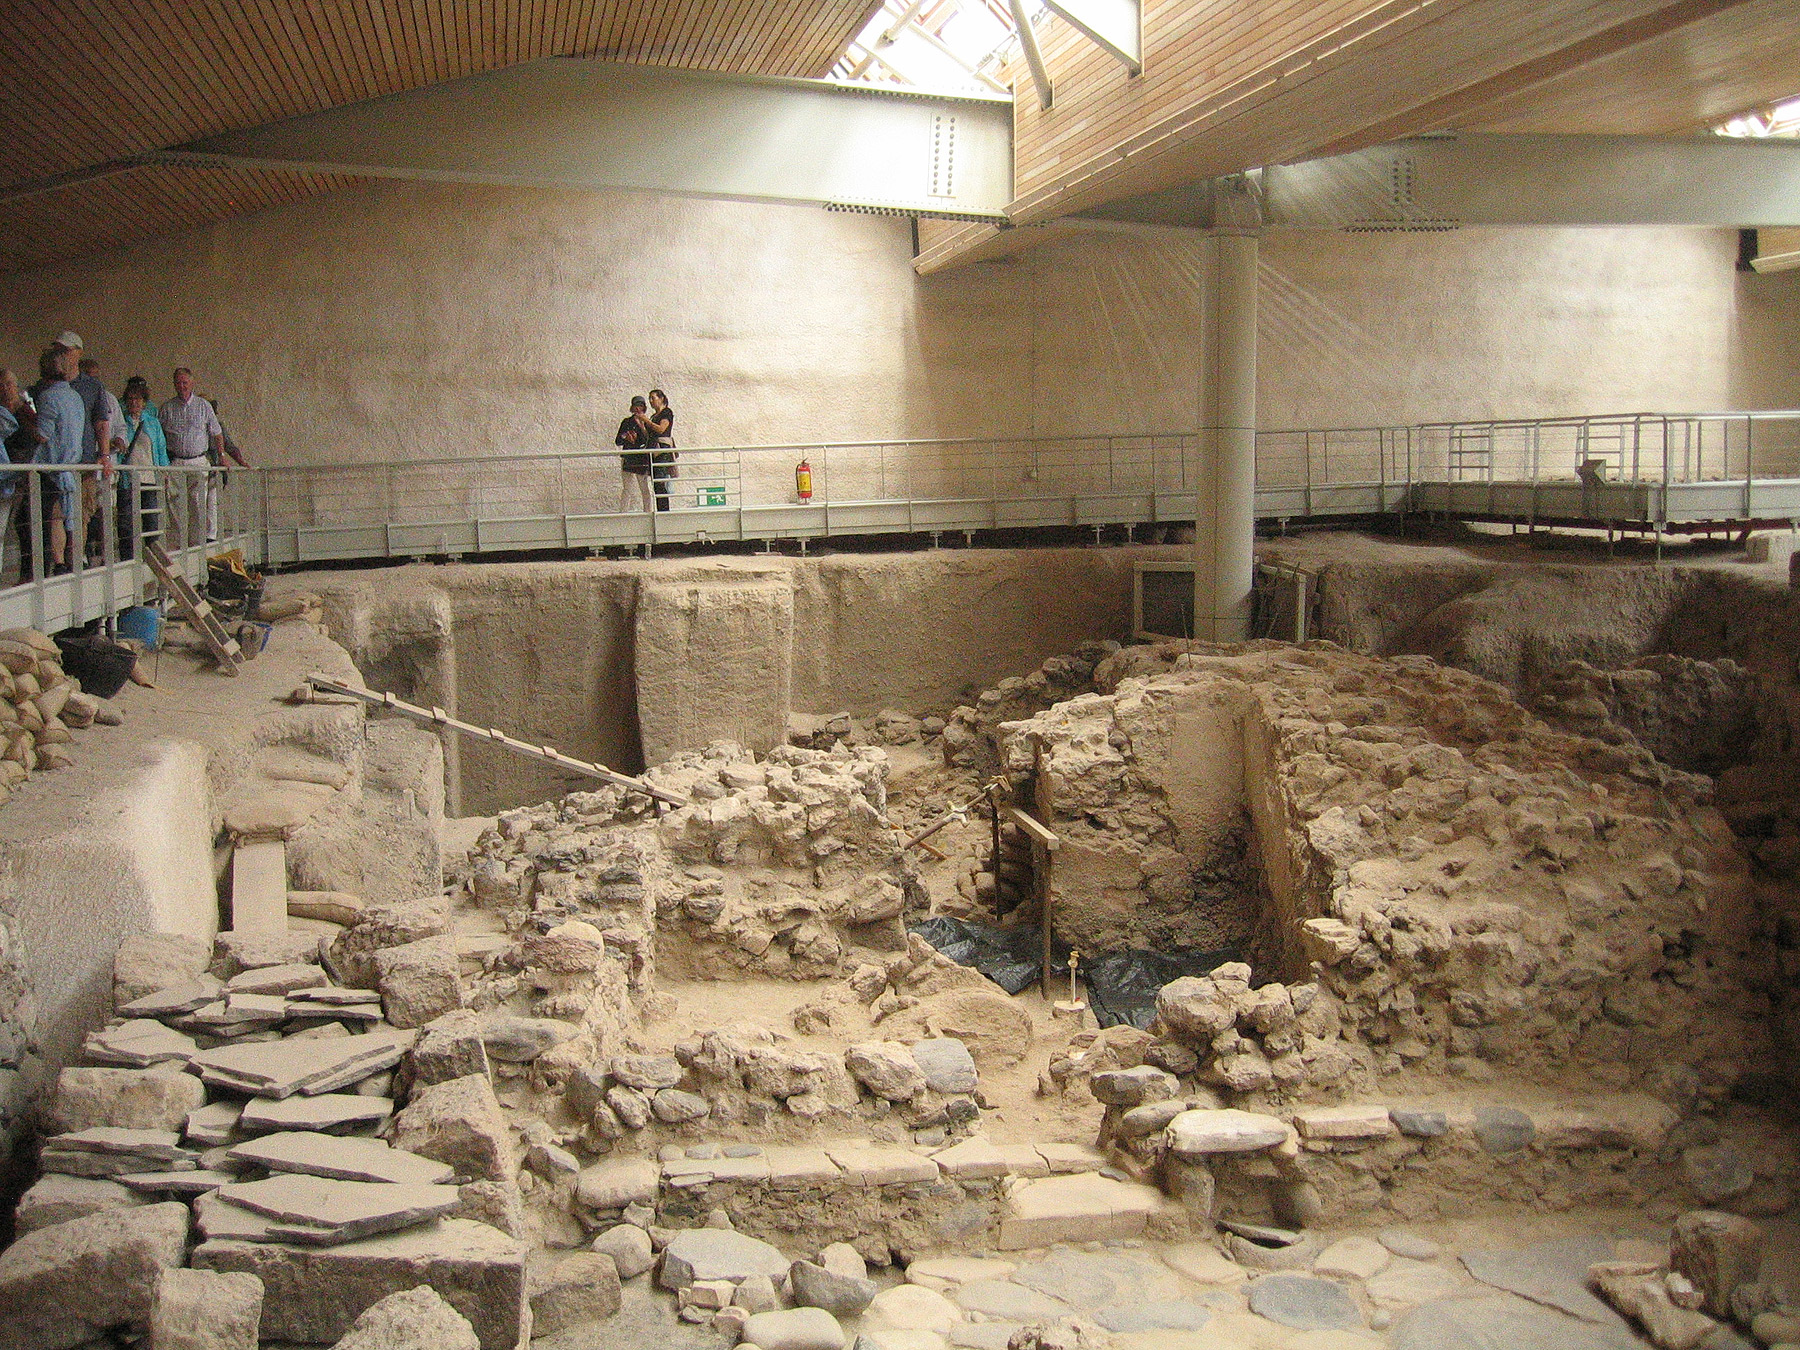 New ritual objects found in ancient Santorini public building